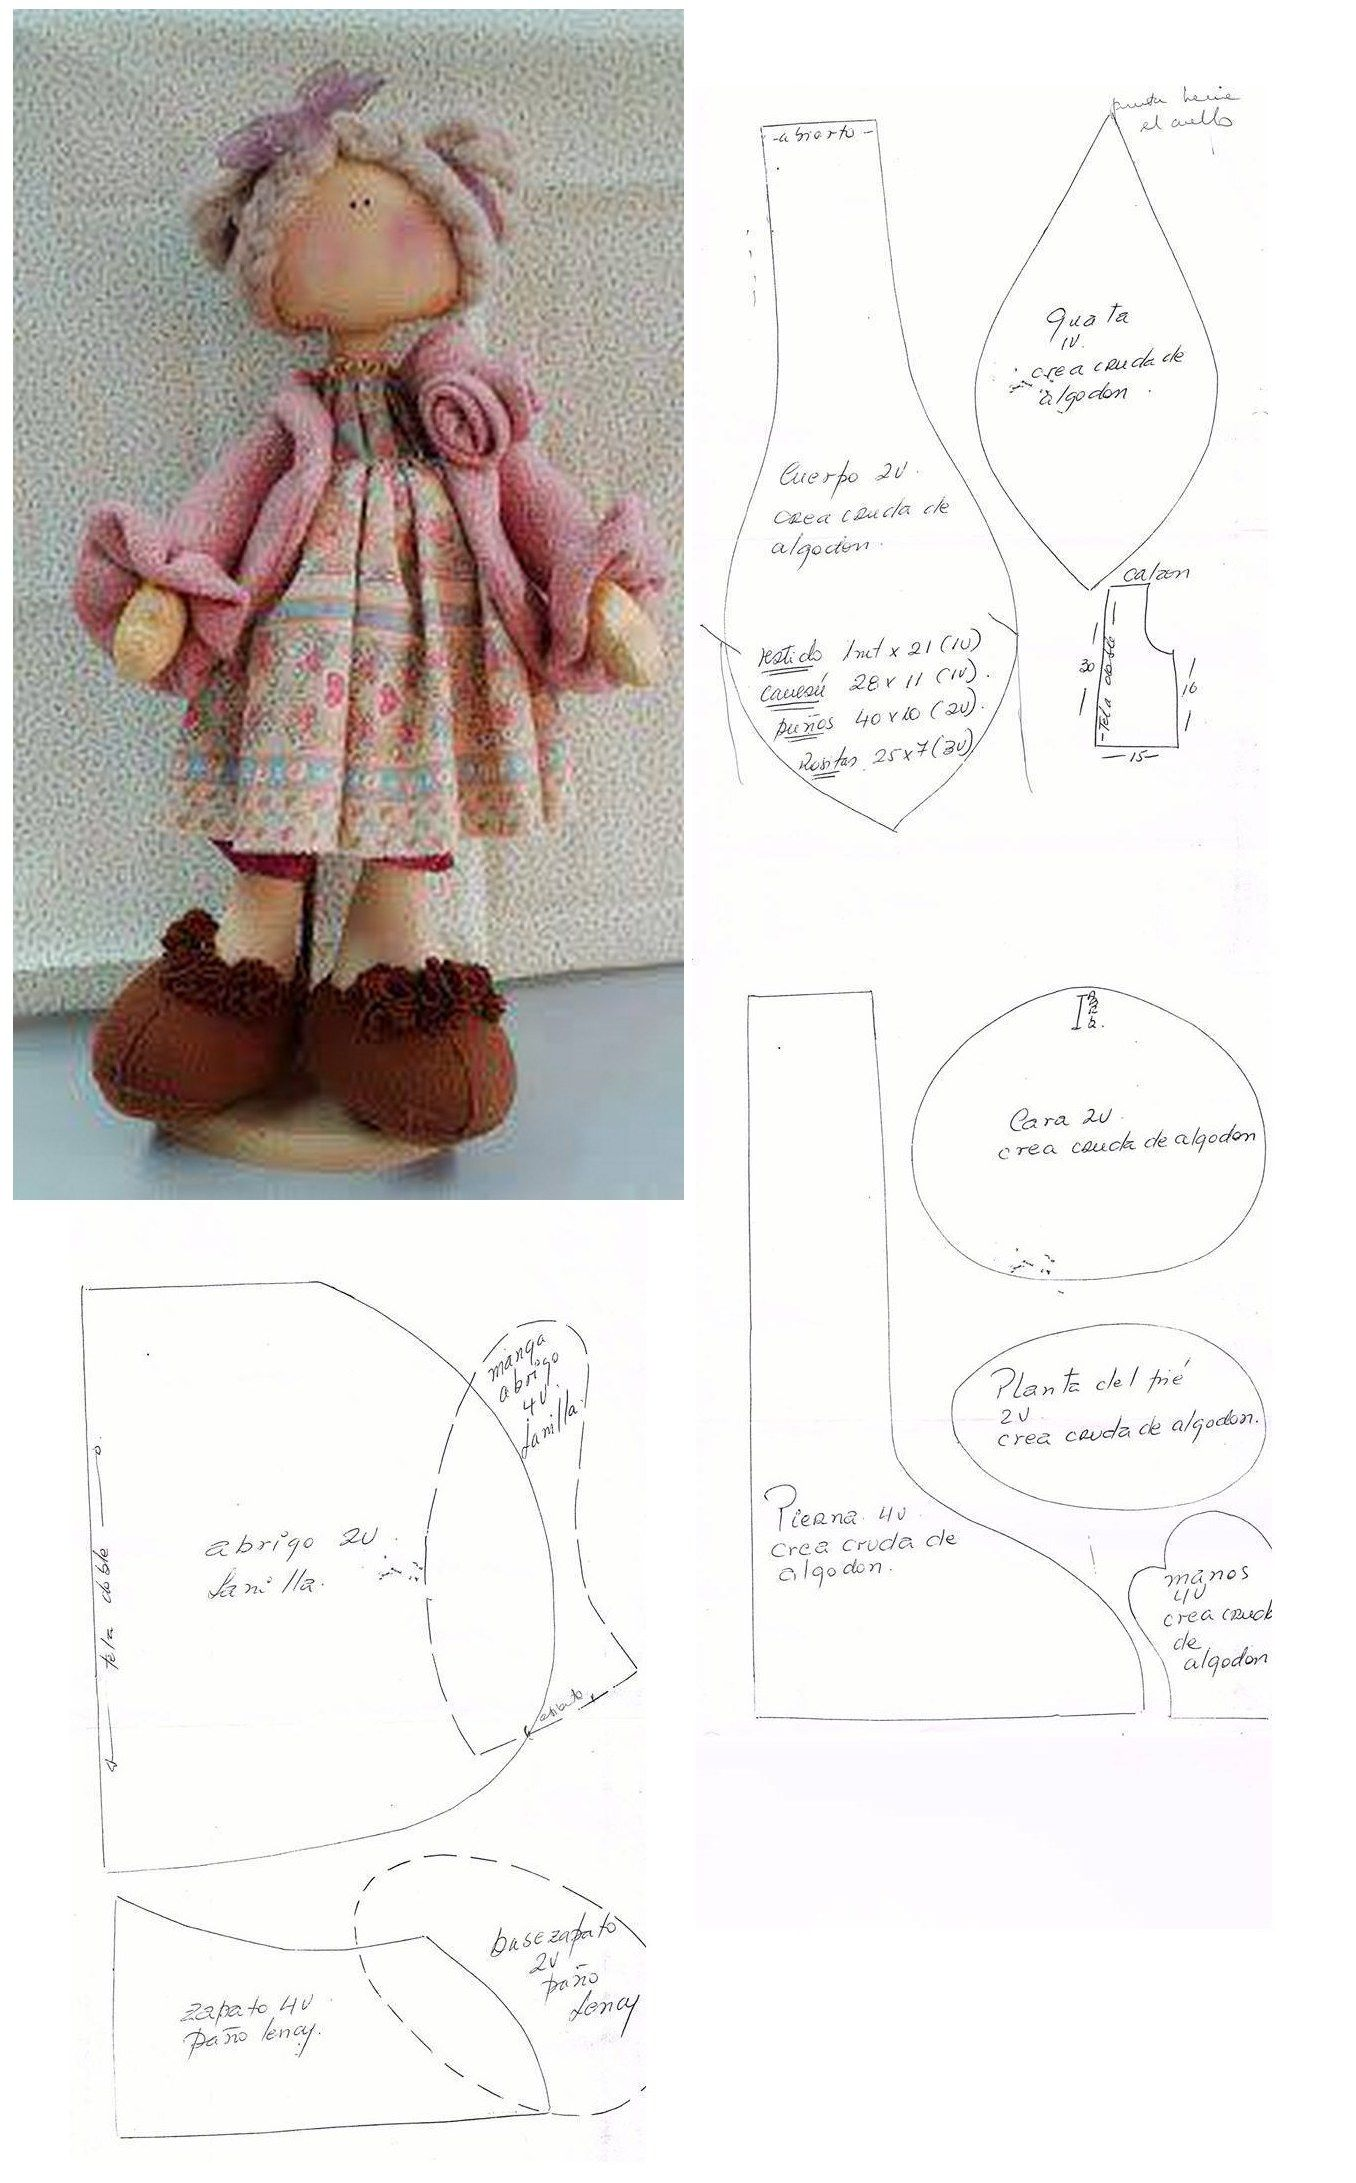 lovely cloth doll pattern   Proyectos de costura   Pinterest ...